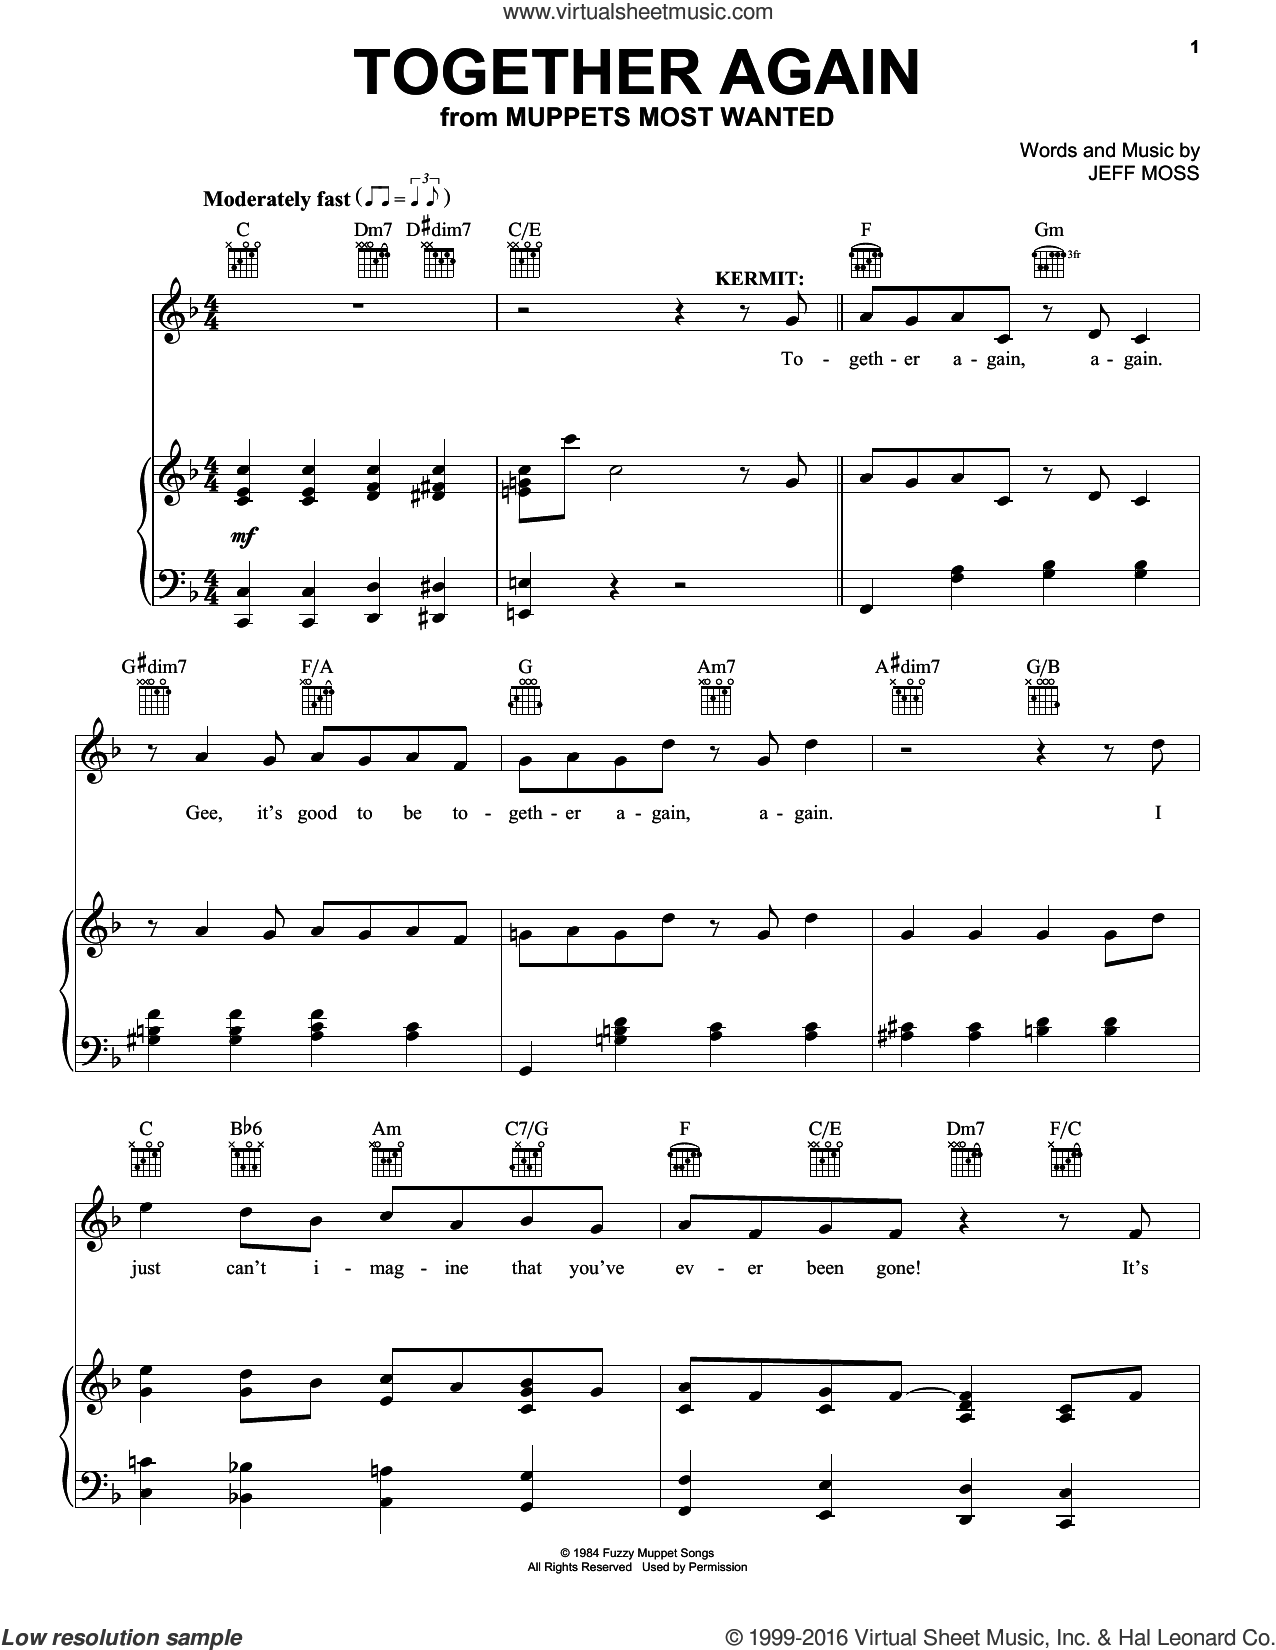 Together Again sheet music for voice, piano or guitar by Jeff Moss. Score Image Preview.